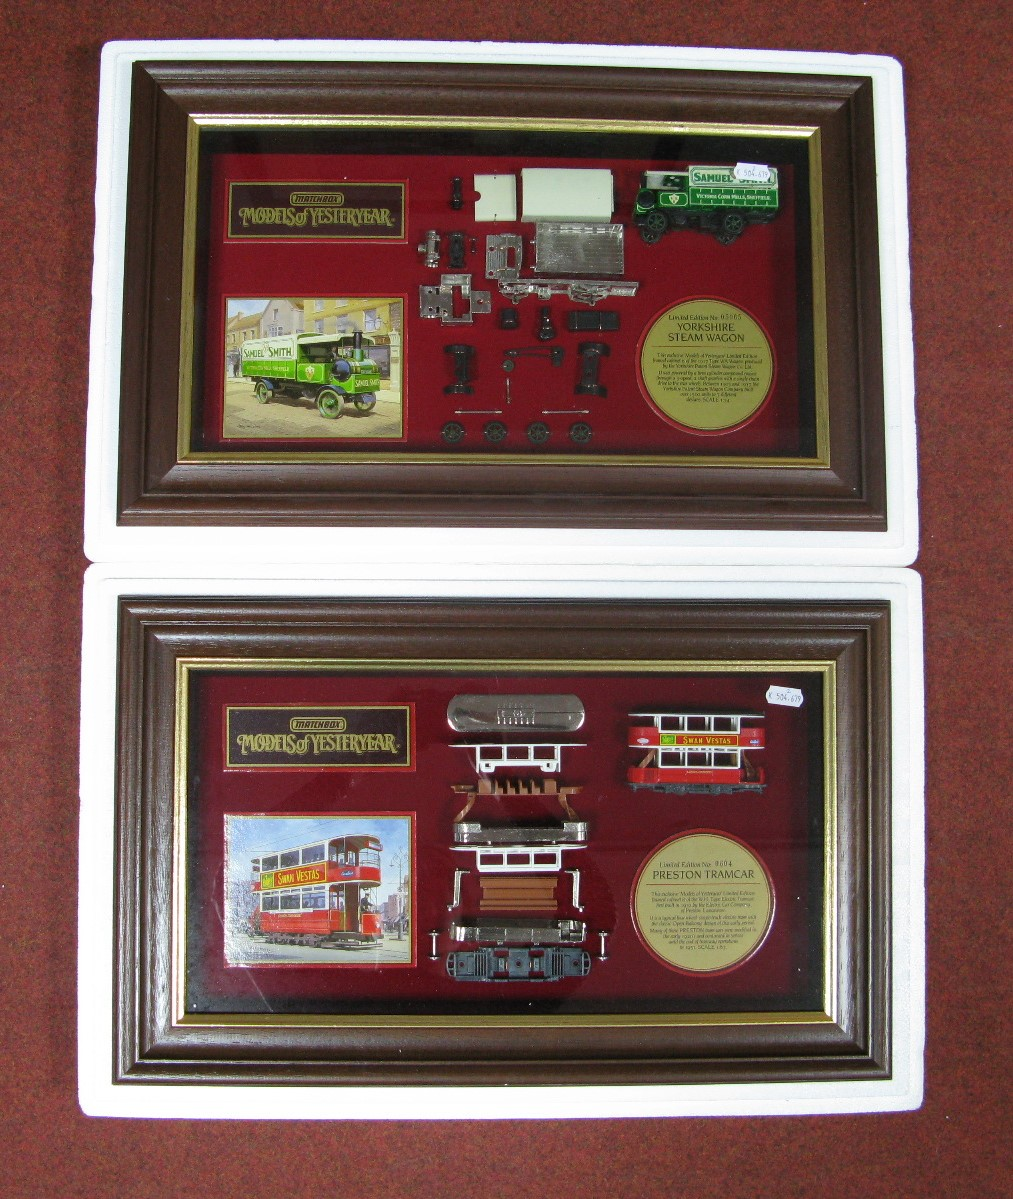 """Lot 4 - Two matchbox Models of Yesteryear, framed diecast display cabinets, Preston tramcar, no0604 """"Swan"""